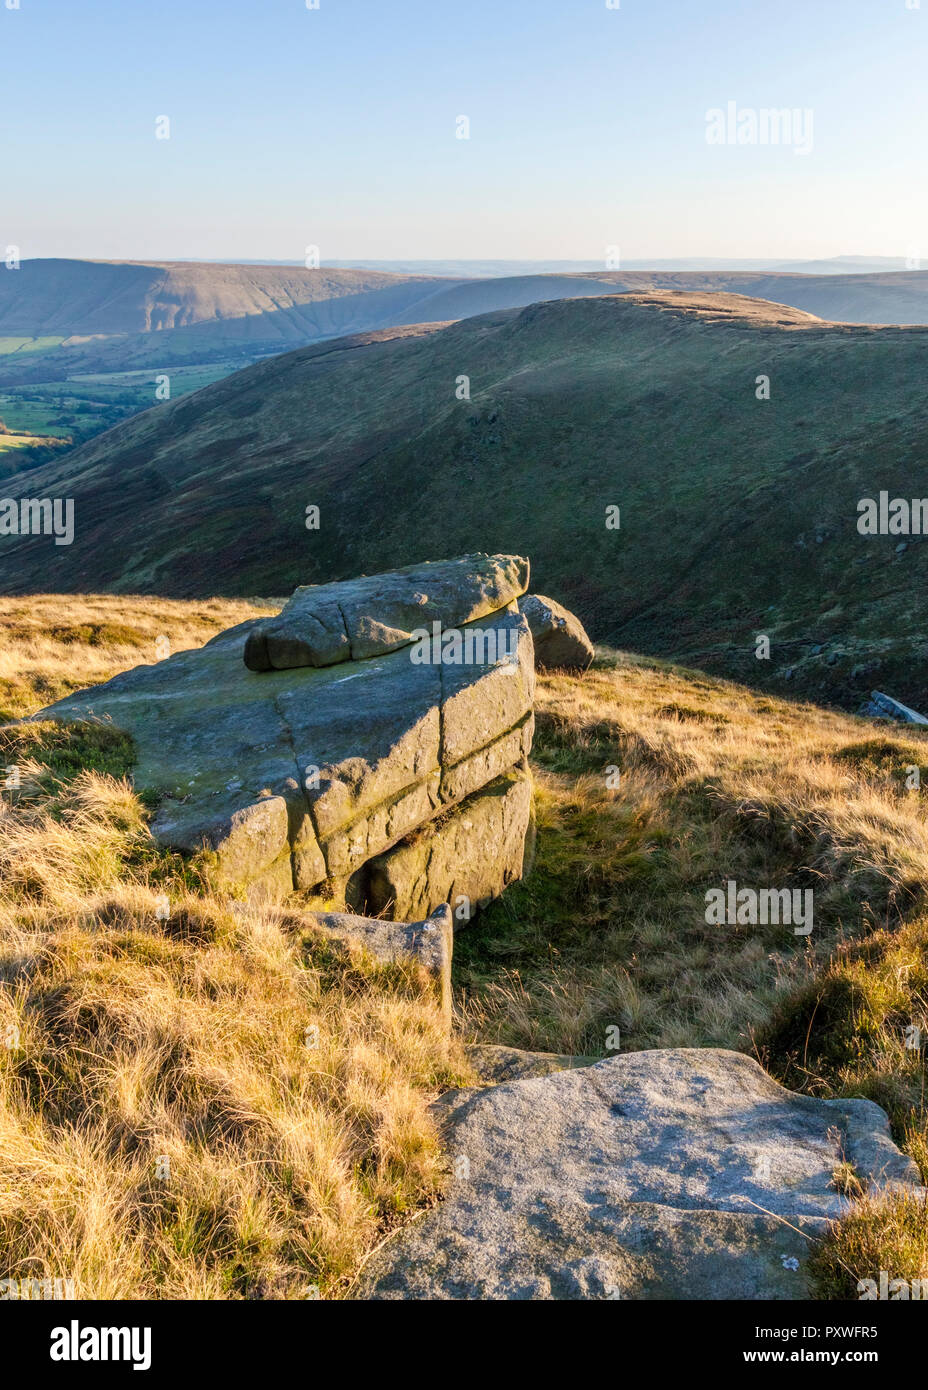 English scenery. Autumn evening view from the edge of Crowden Clough, Kinder Scout towards the Vale of Edale, Derbyshire, Peak District, England, UK. - Stock Image